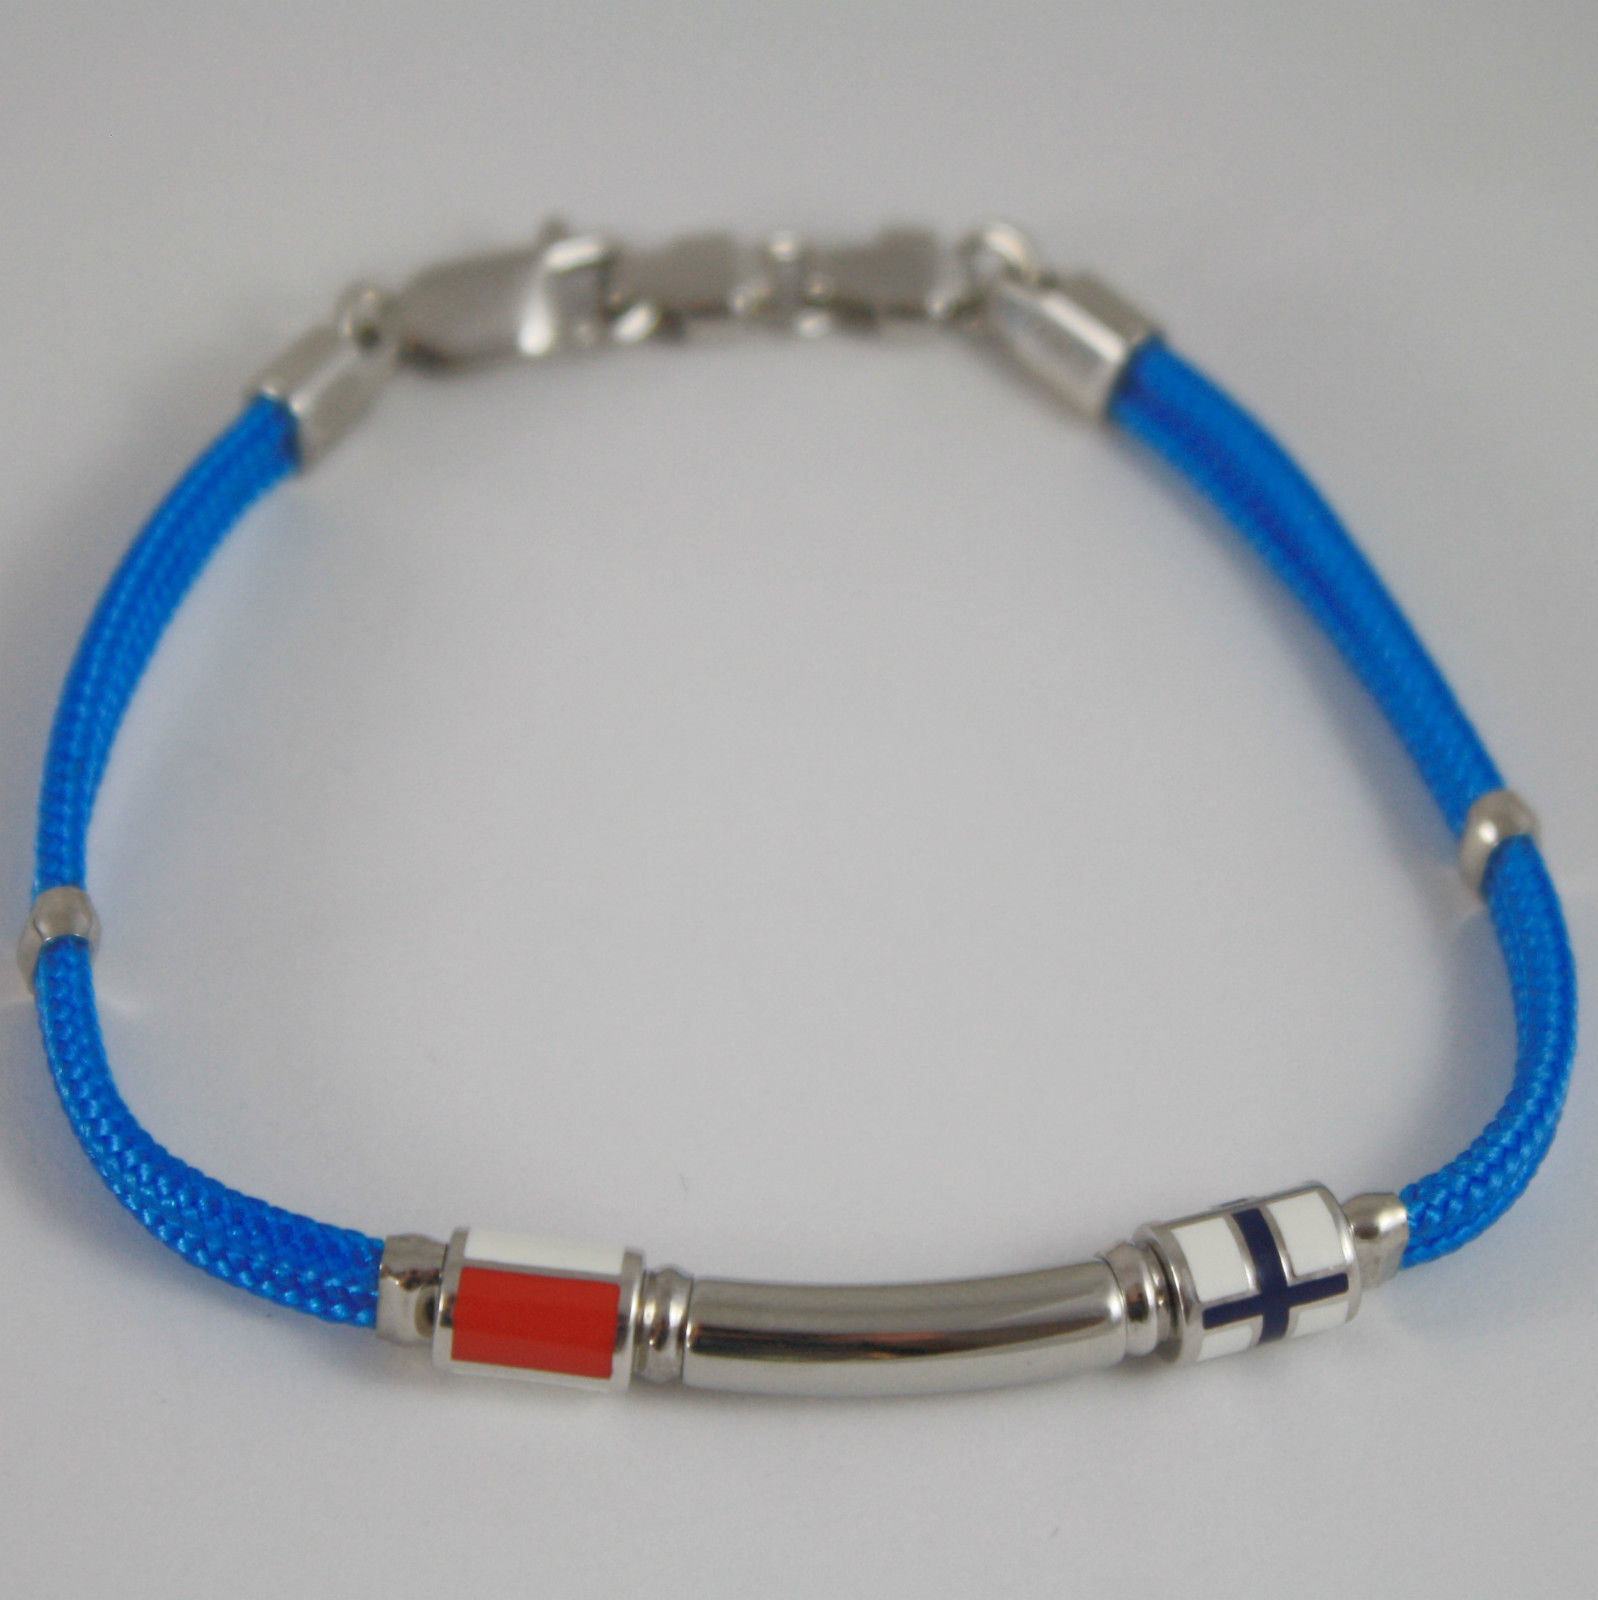 925 SILVER BRACELET NAUTICAL AZURE ROPE & 2 GLAZED FLAGS BY ZANCAN MADE IN ITALY